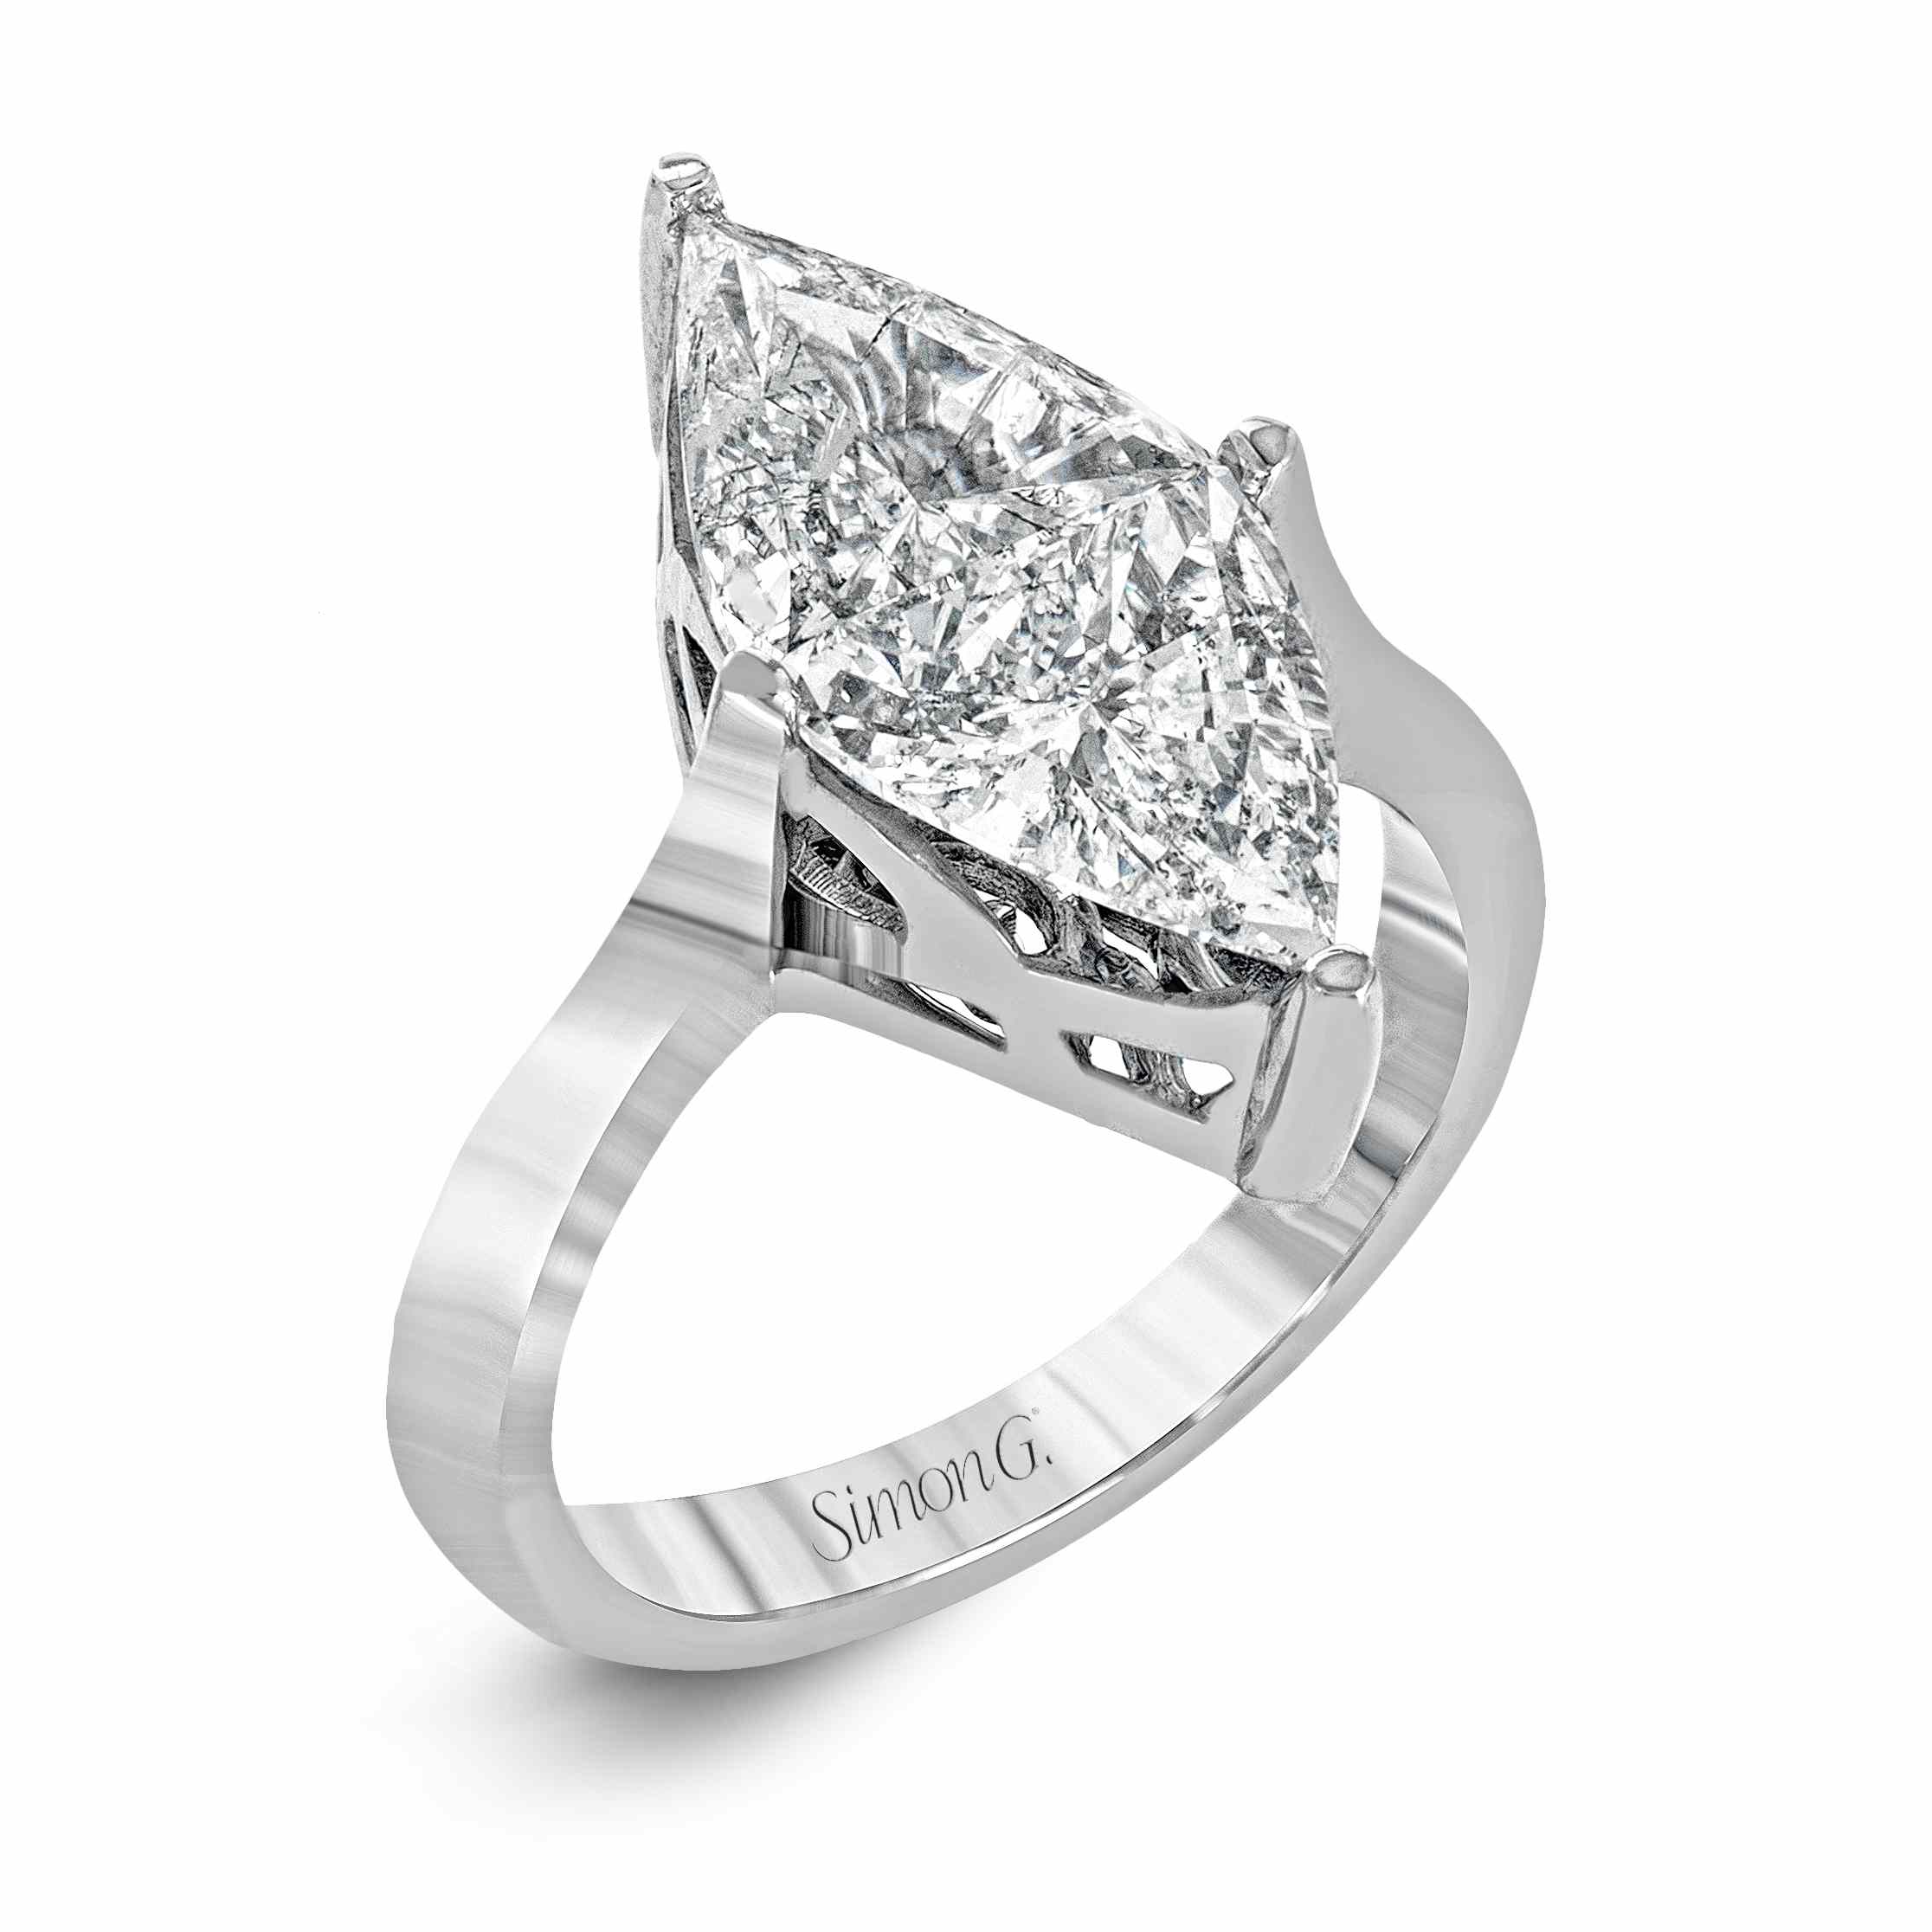 24 Marquise Engagement Rings That Prove The Style Is Totally Back